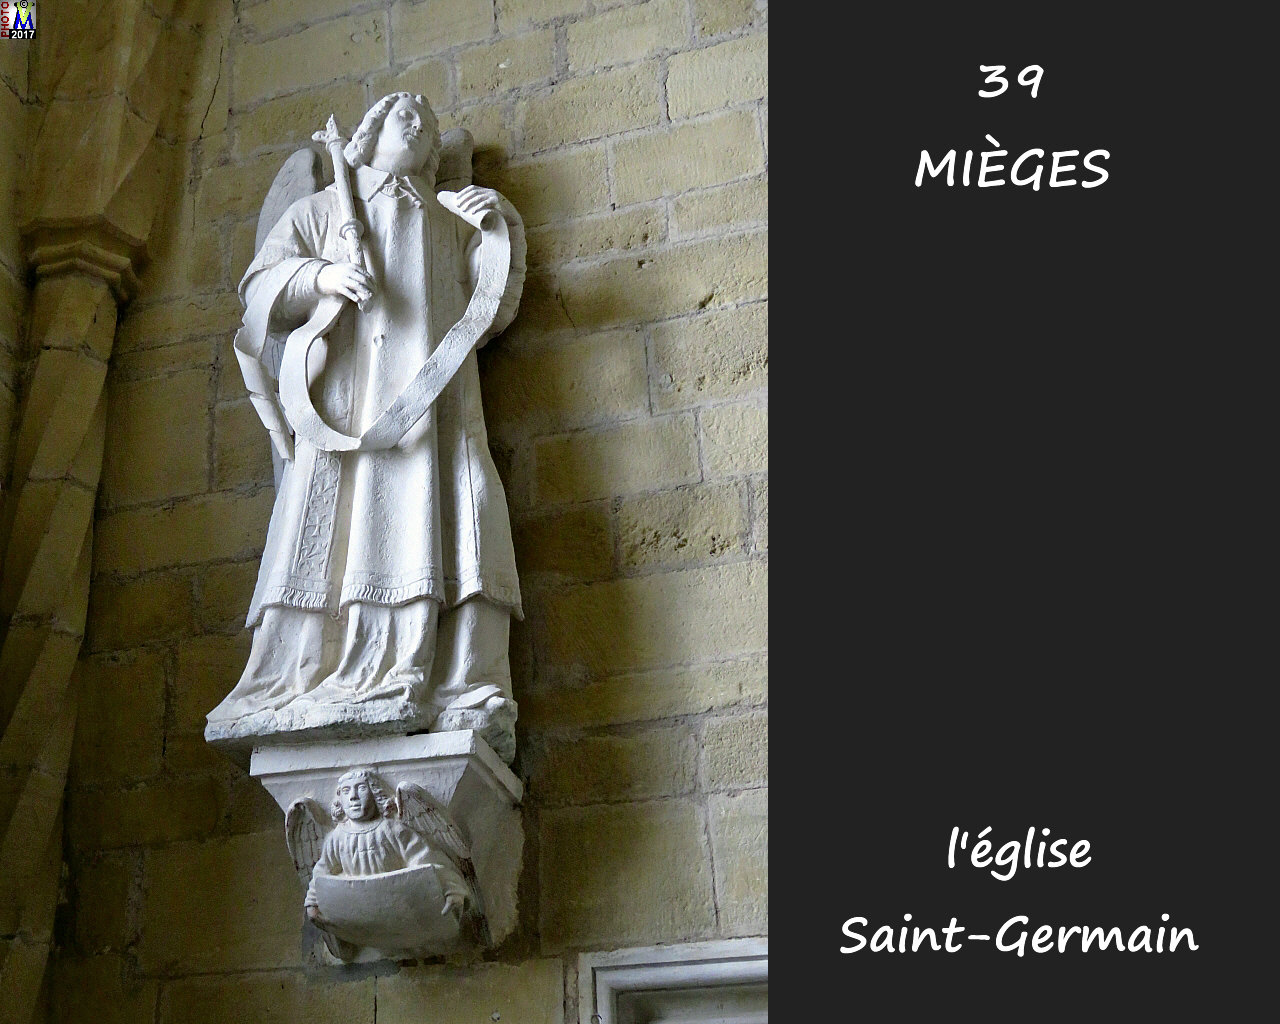 39MIEGES_eglise_268.jpg